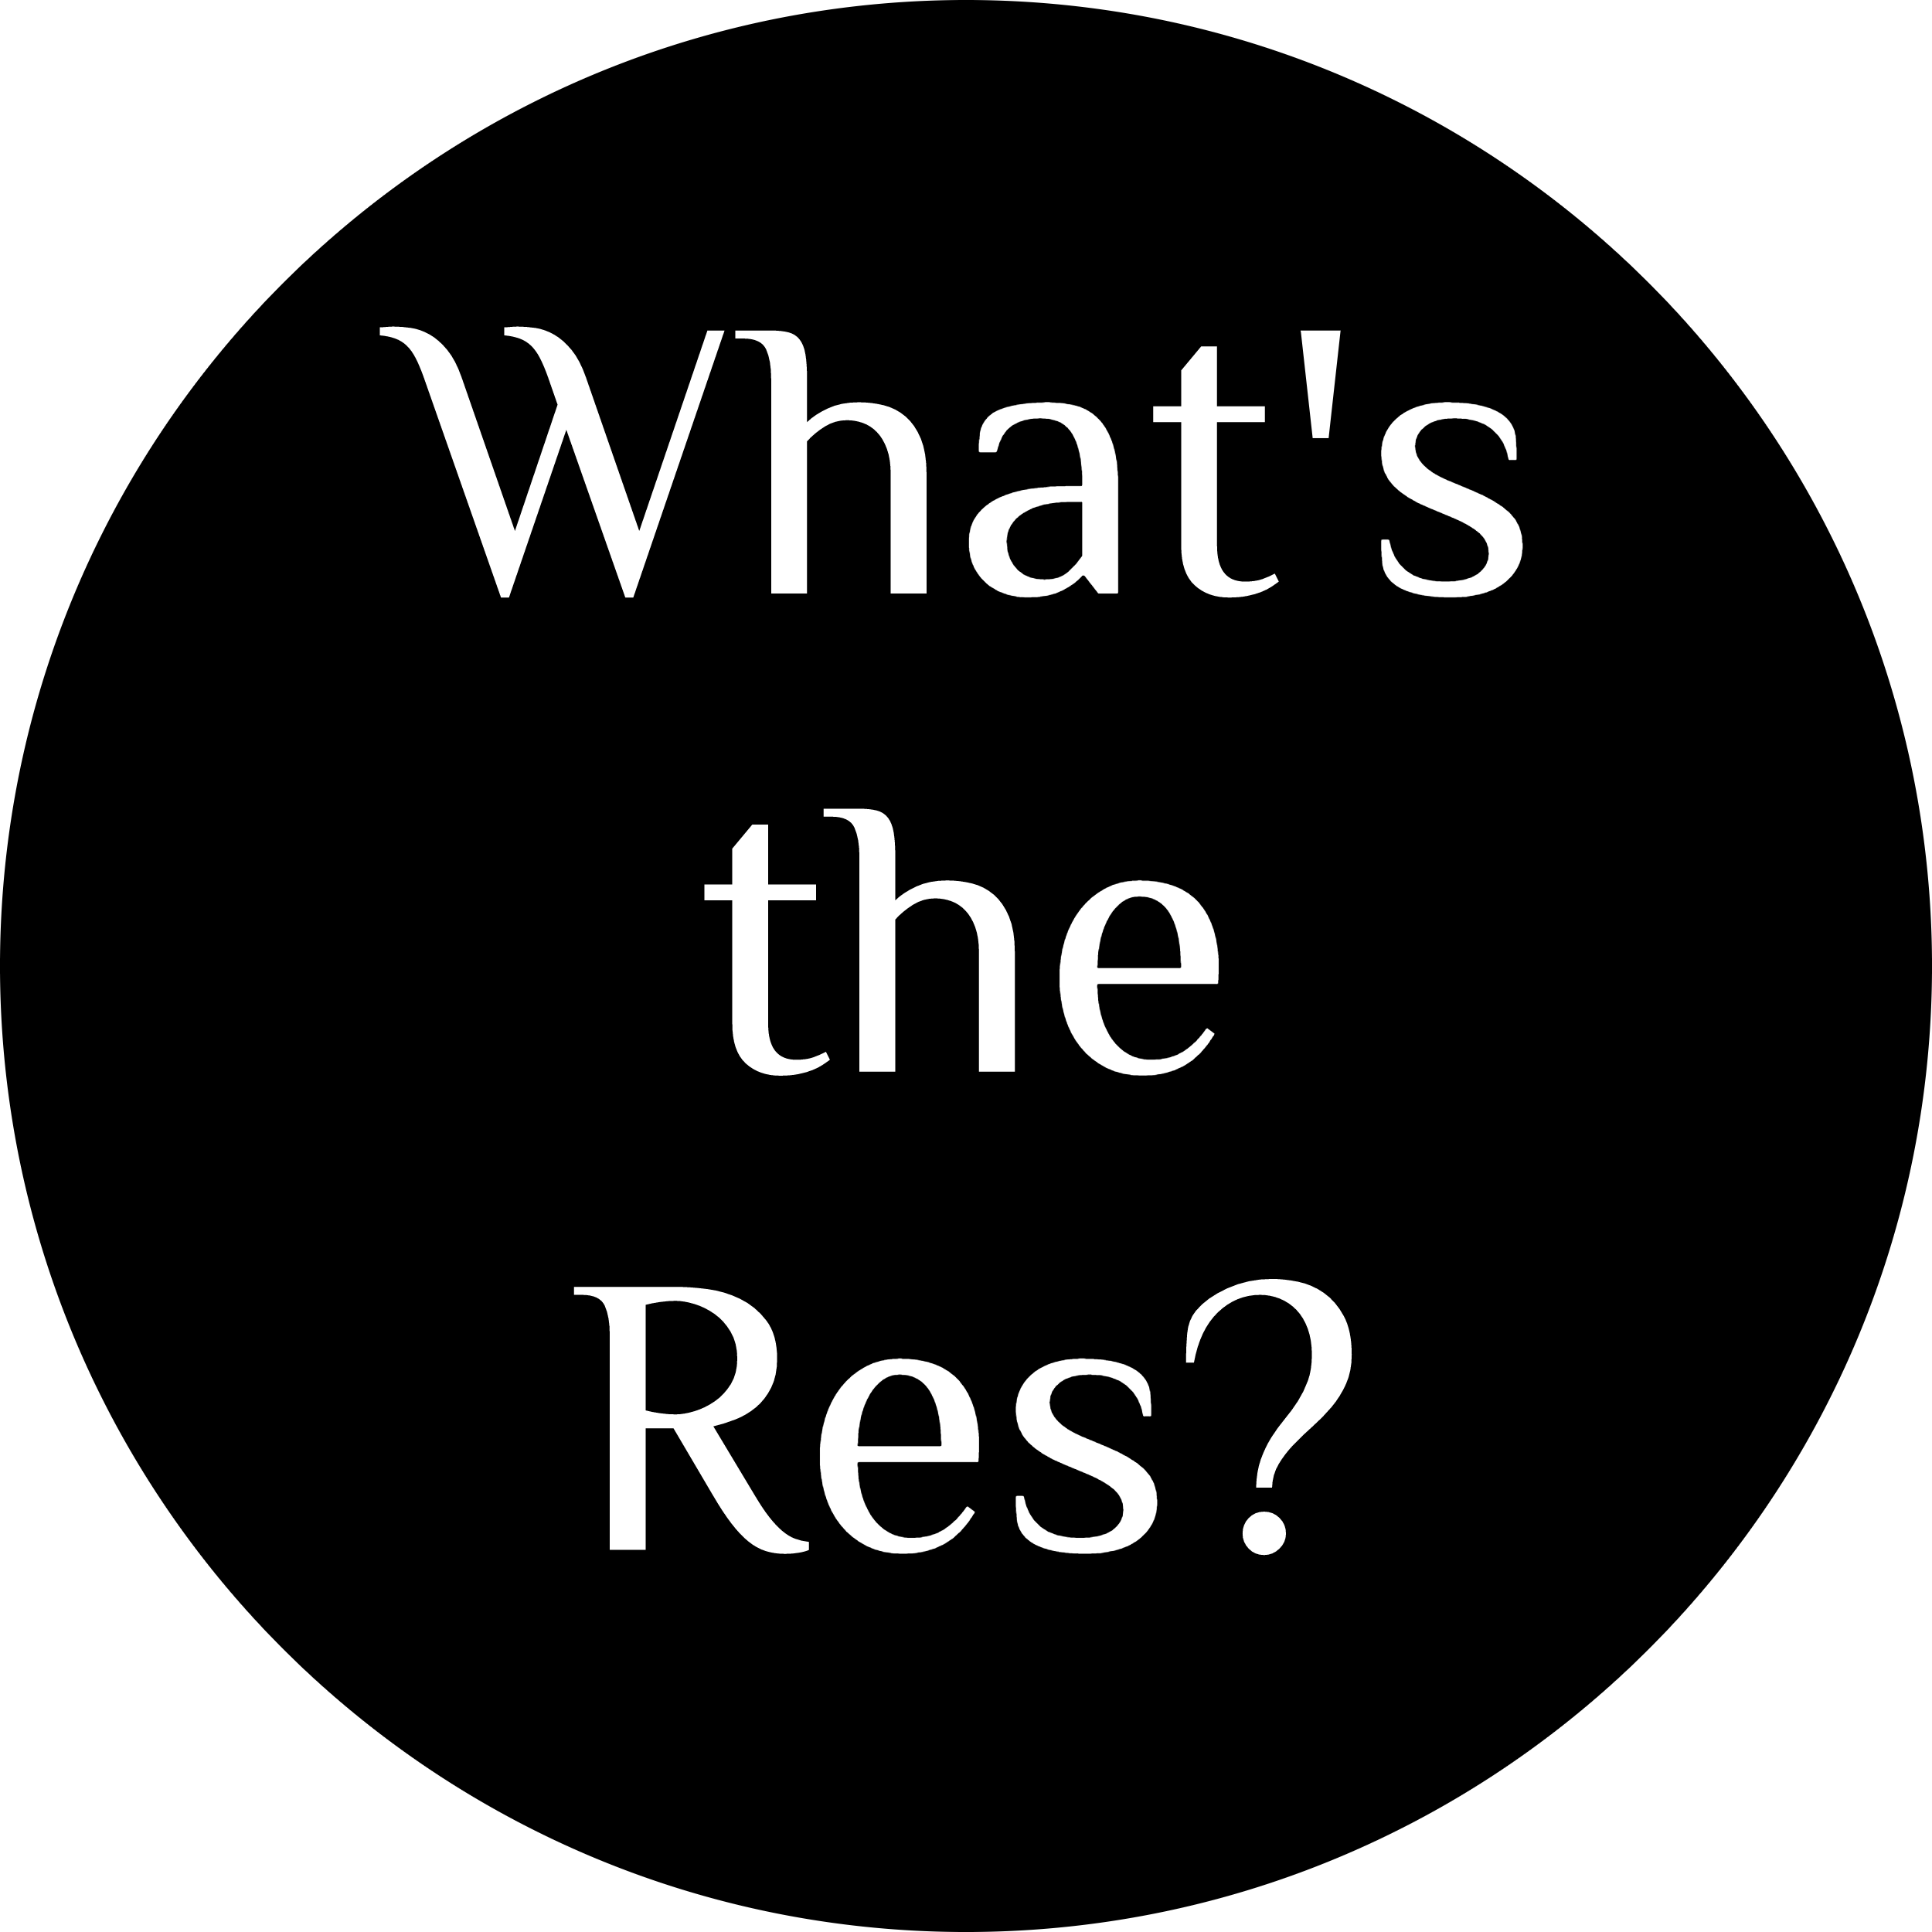 What's the Res - Summer 2 - Debate between Conservatives and Progressives through the Common Ground Initiative: An Interview with Gleaves Whitney